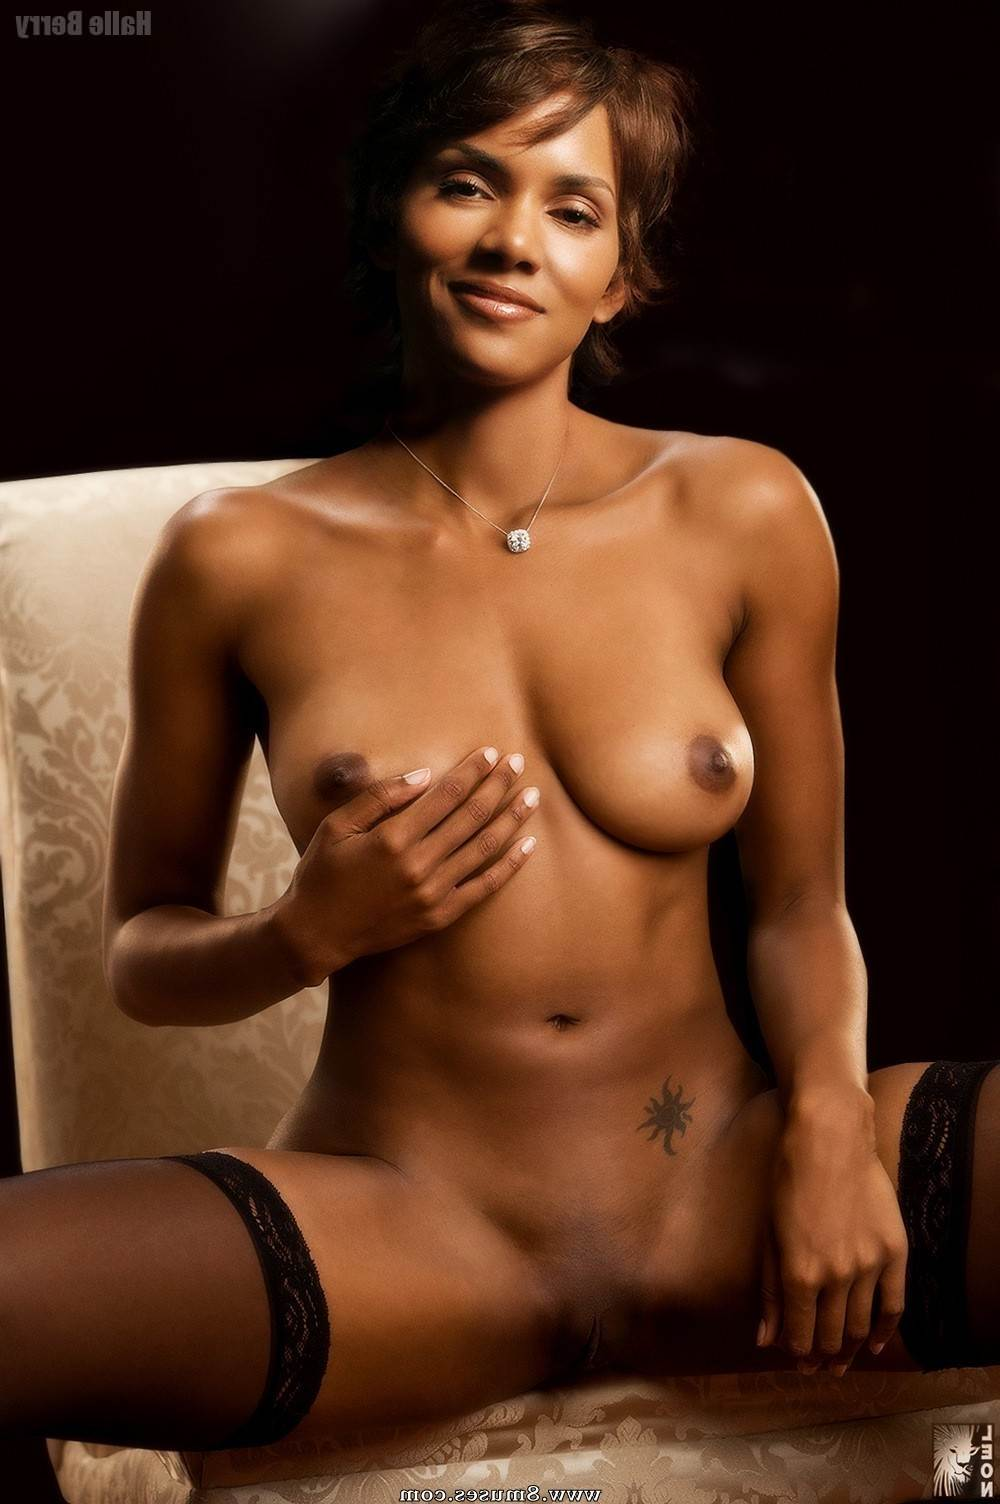 Fake-Celebrities-Sex-Pictures/Halle-Berry Halle_Berry__8muses_-_Sex_and_Porn_Comics_39.jpg